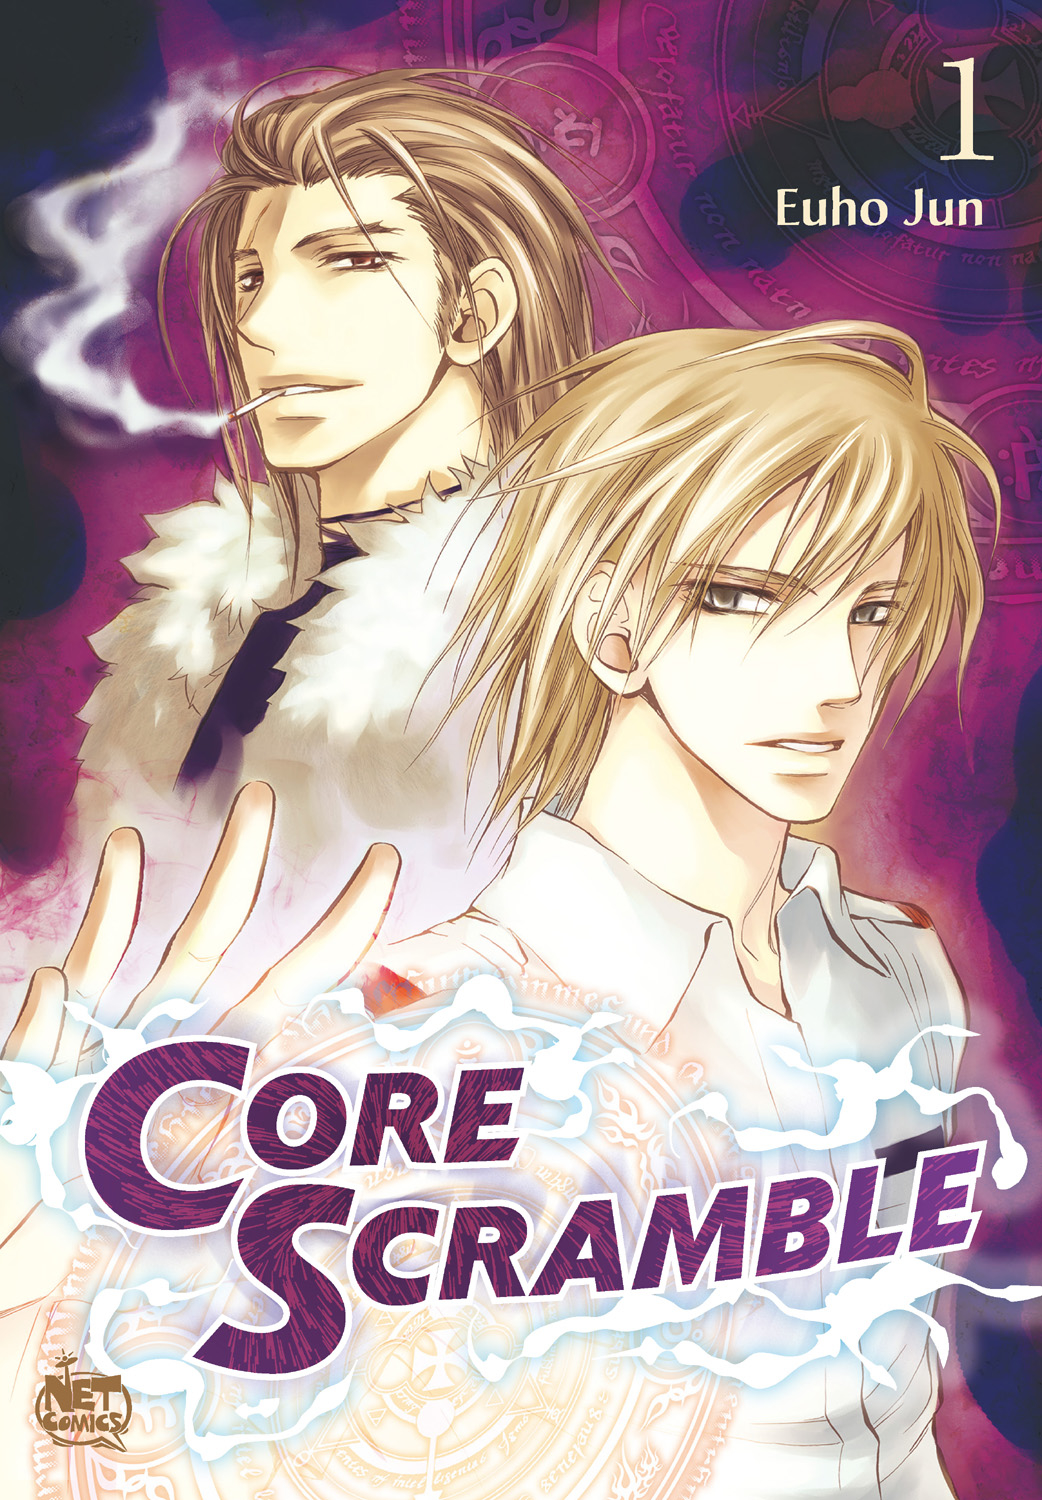 CORE SCRAMBLE GN VOL 01 (OF 3) (MR)